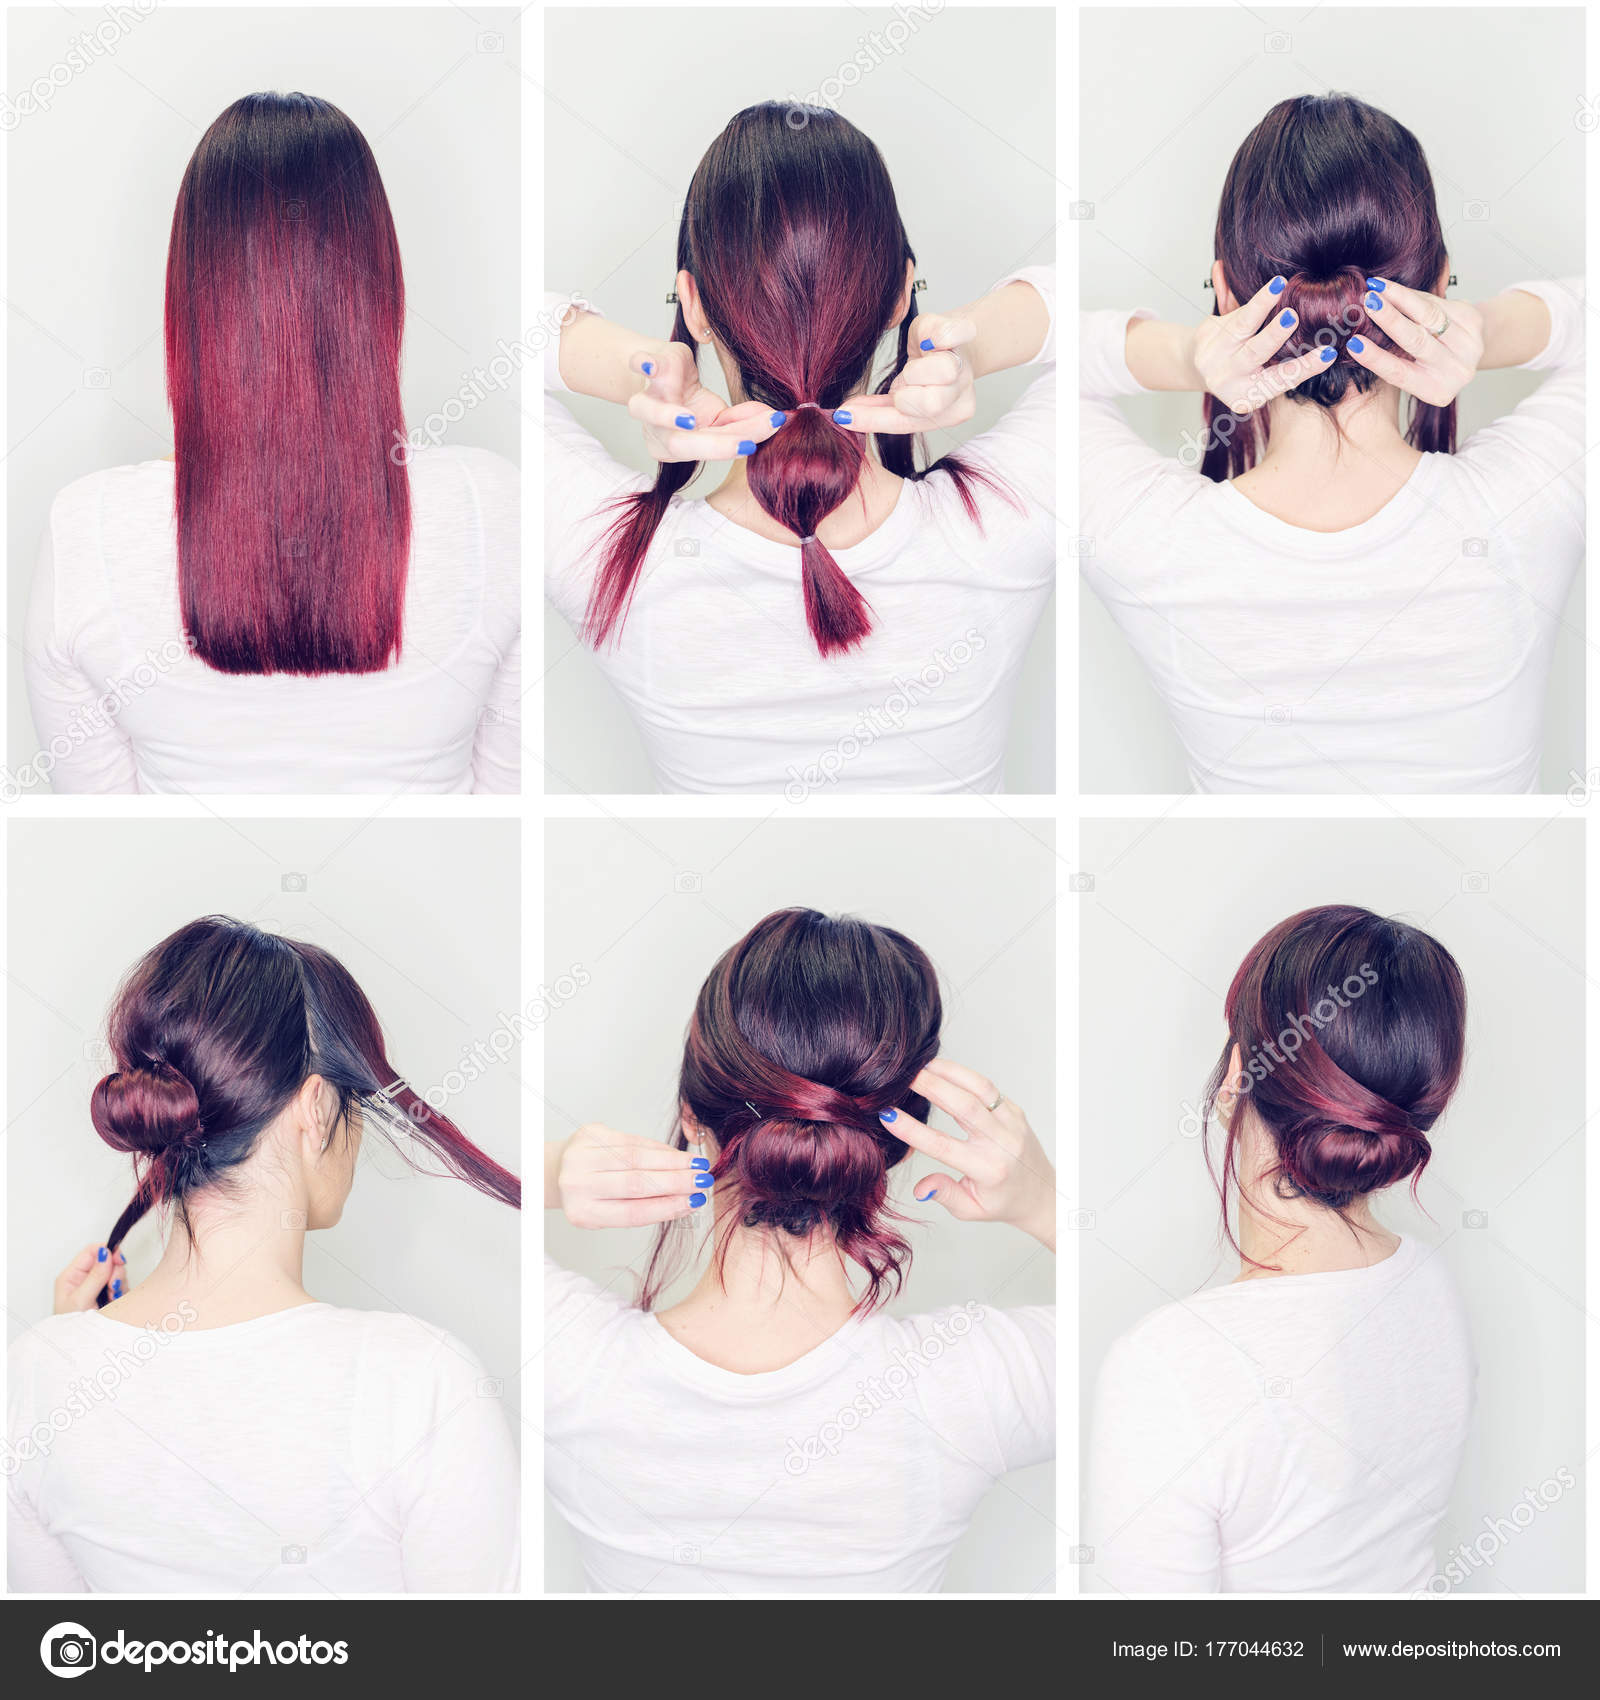 Images Step By Step Hairstyles Hairstyles Tutorial Step Step Woman Showing How Make Beautiful Hair Stock Photo C Focusandblur 177044632